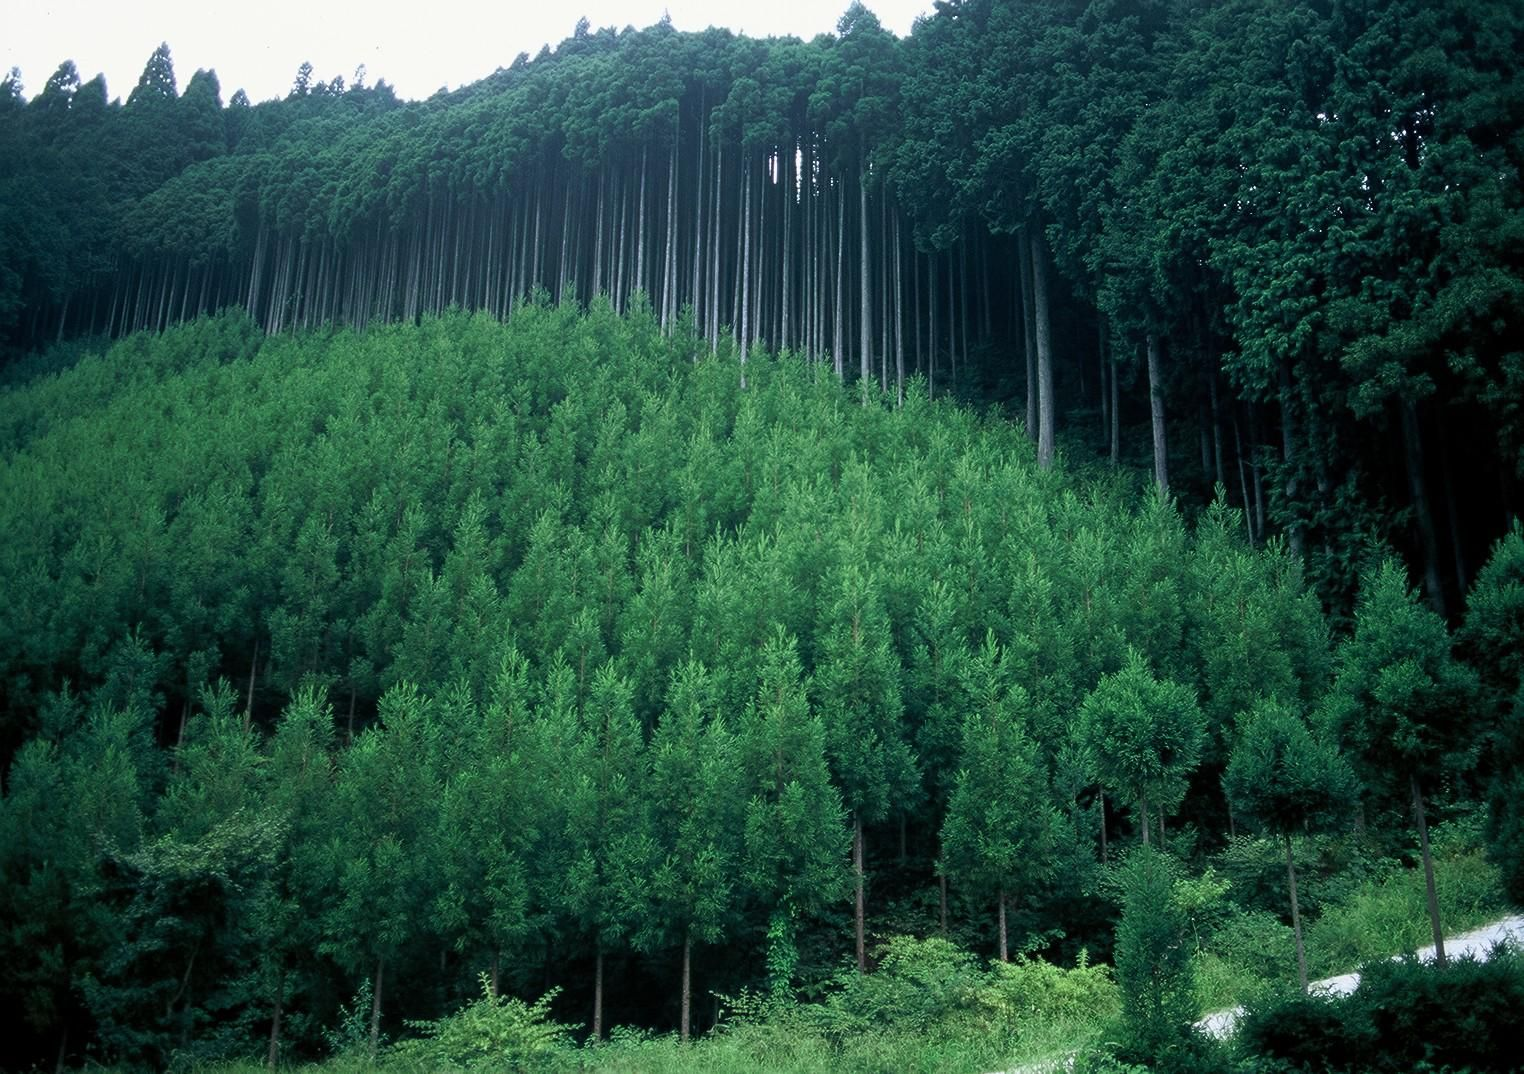 Approximately 68.2% of the japanese land is under the forest cover, the world's 4th highest percentage after laos, finland, and bhutan, and far ahead of countries such as the us, britain, france, and china.japan's forest has the potential for increasing export and. Across The Years I Will Walk With You In Deep Green Forests And Shores Of Sand And When Our Time On Earth Is Through Forest Photos Forest Resources Forest